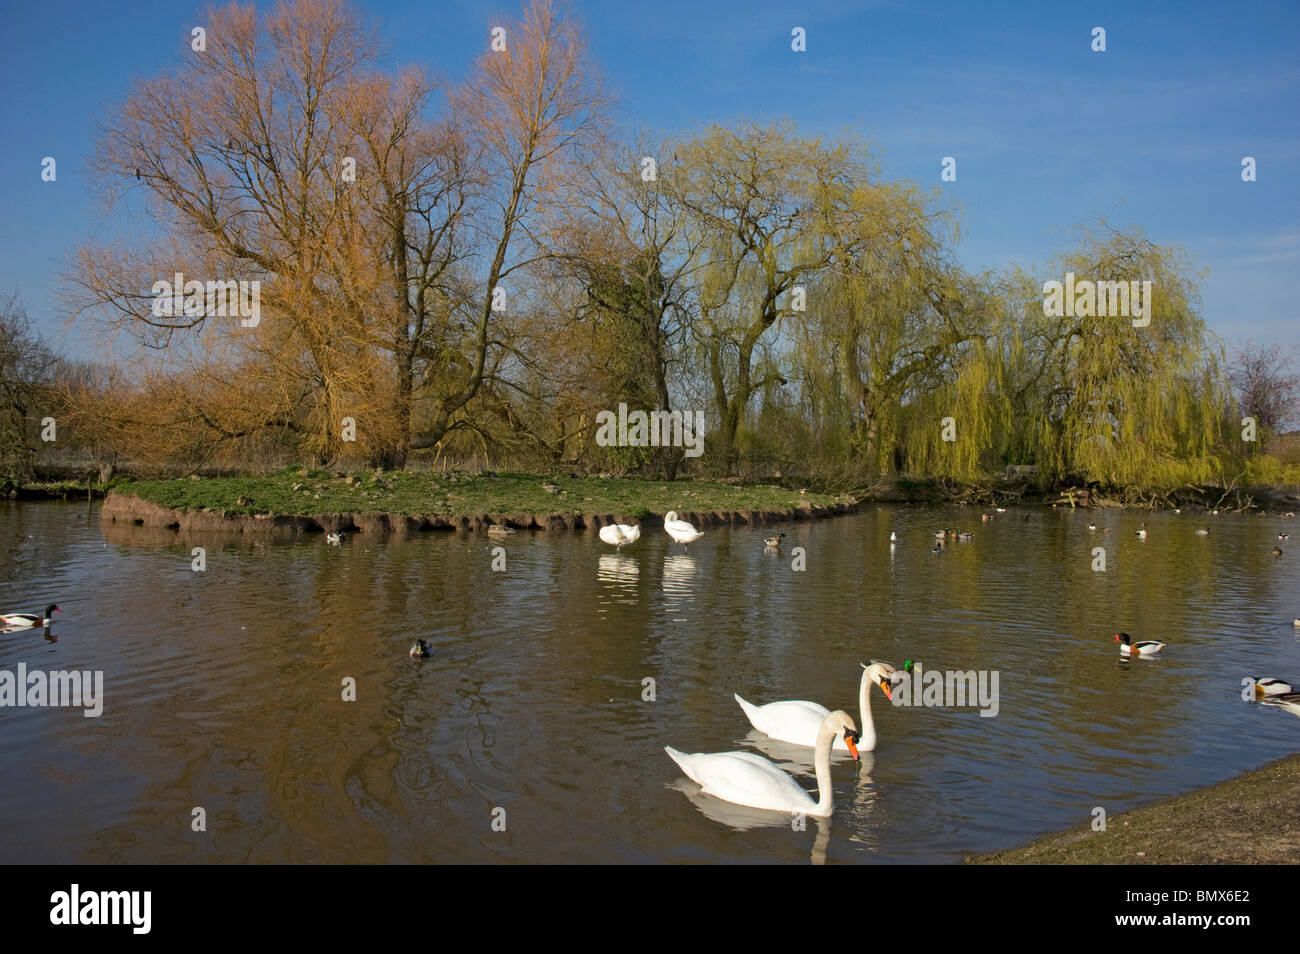 Slimbridge WWT in the spring wildfowl & willows leafing out - Stock Image